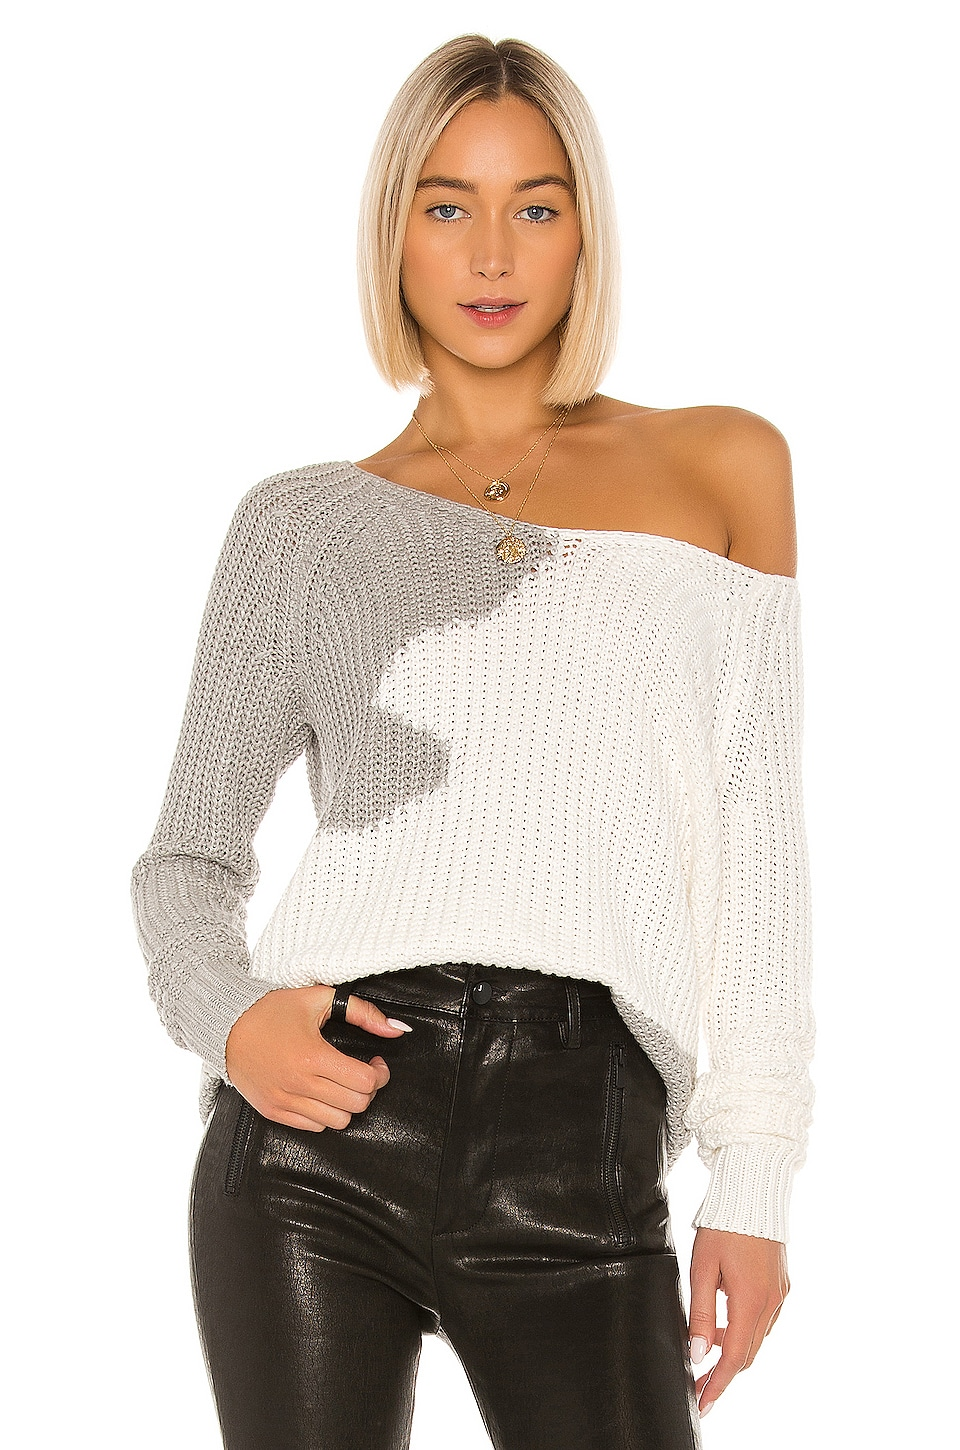 House of Harlow 1960 x REVOLVE Adrienne Pullover in White & Grey